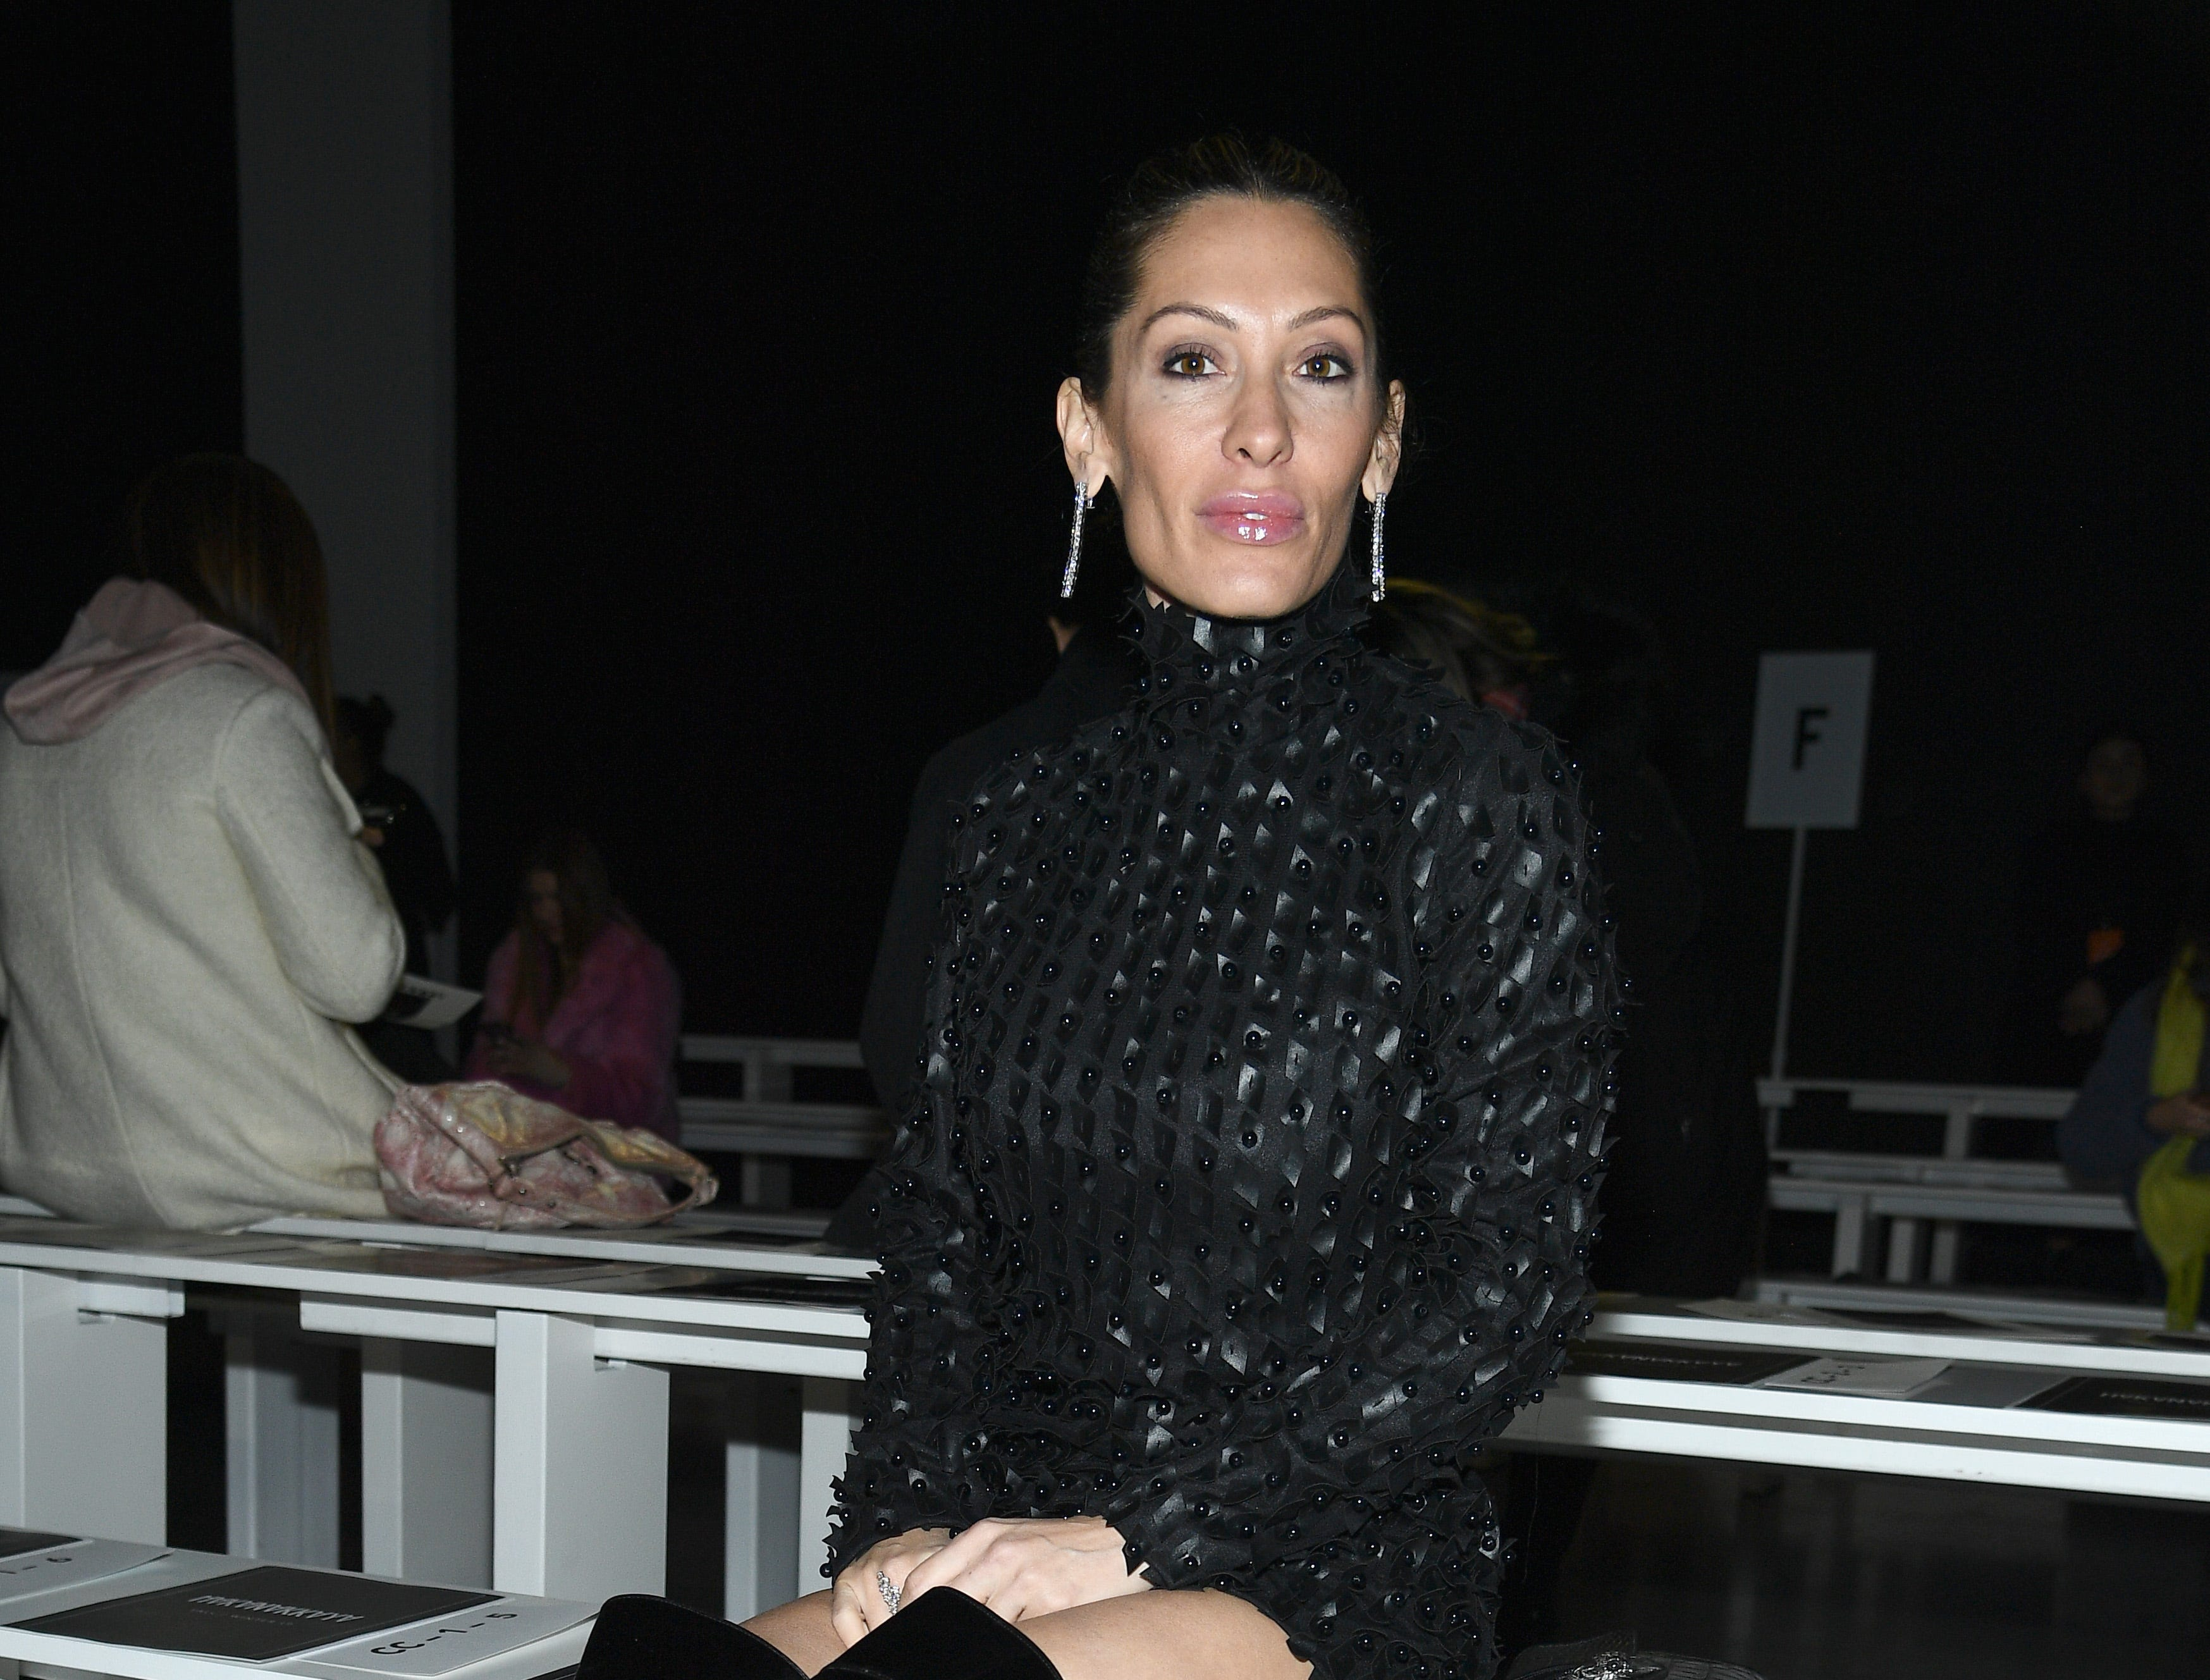 Seren Shvo is spotted sitting front row at Hakan Akkaya's fashion show.